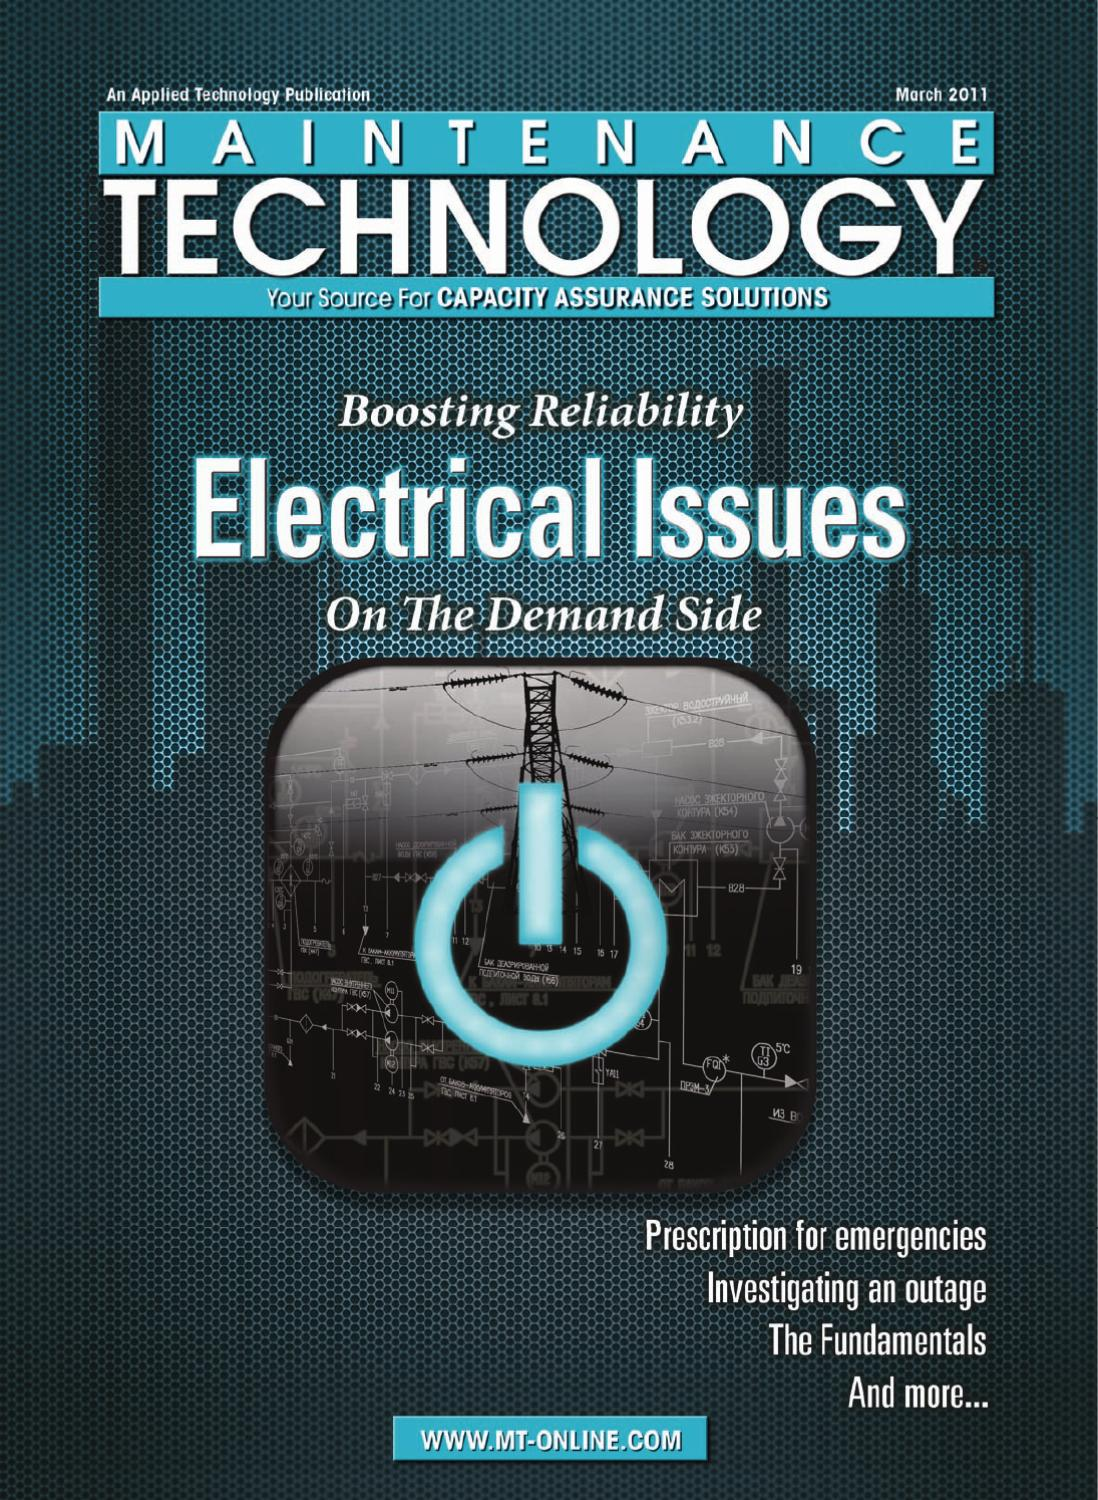 Maintenance Technology March 2011 by Applied Technology Publications ...